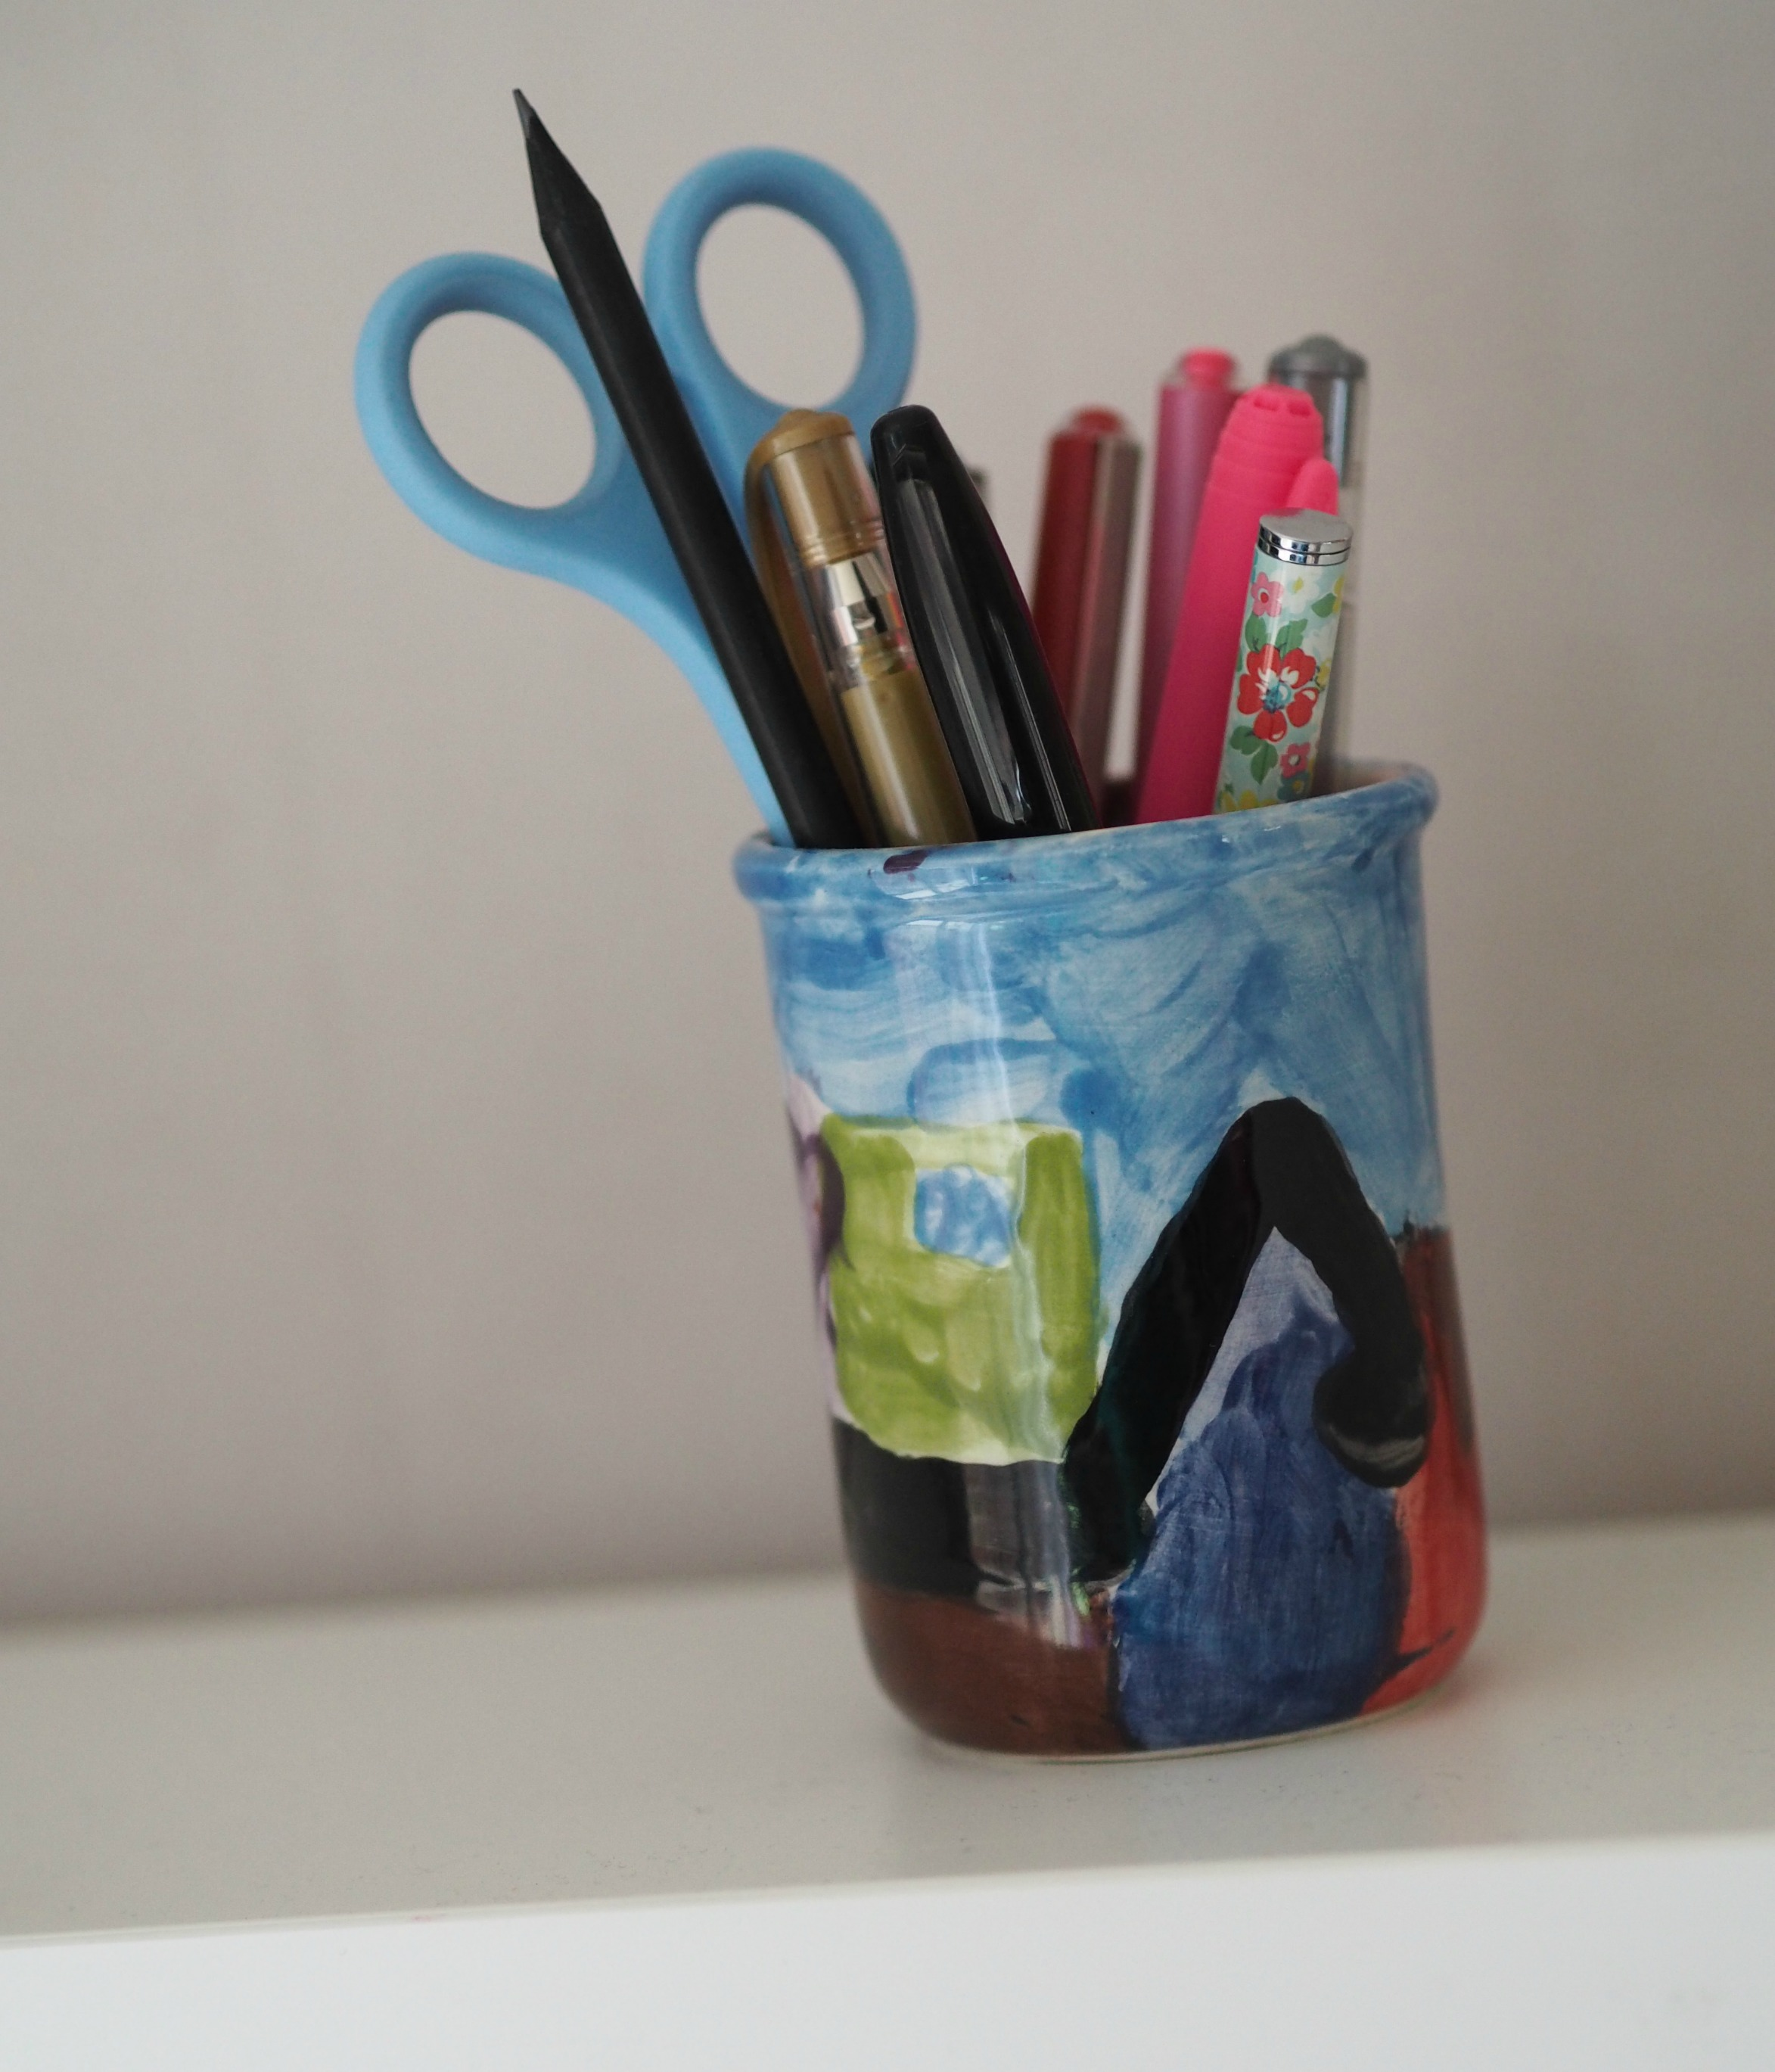 My Favourite Desk Item - pen pot